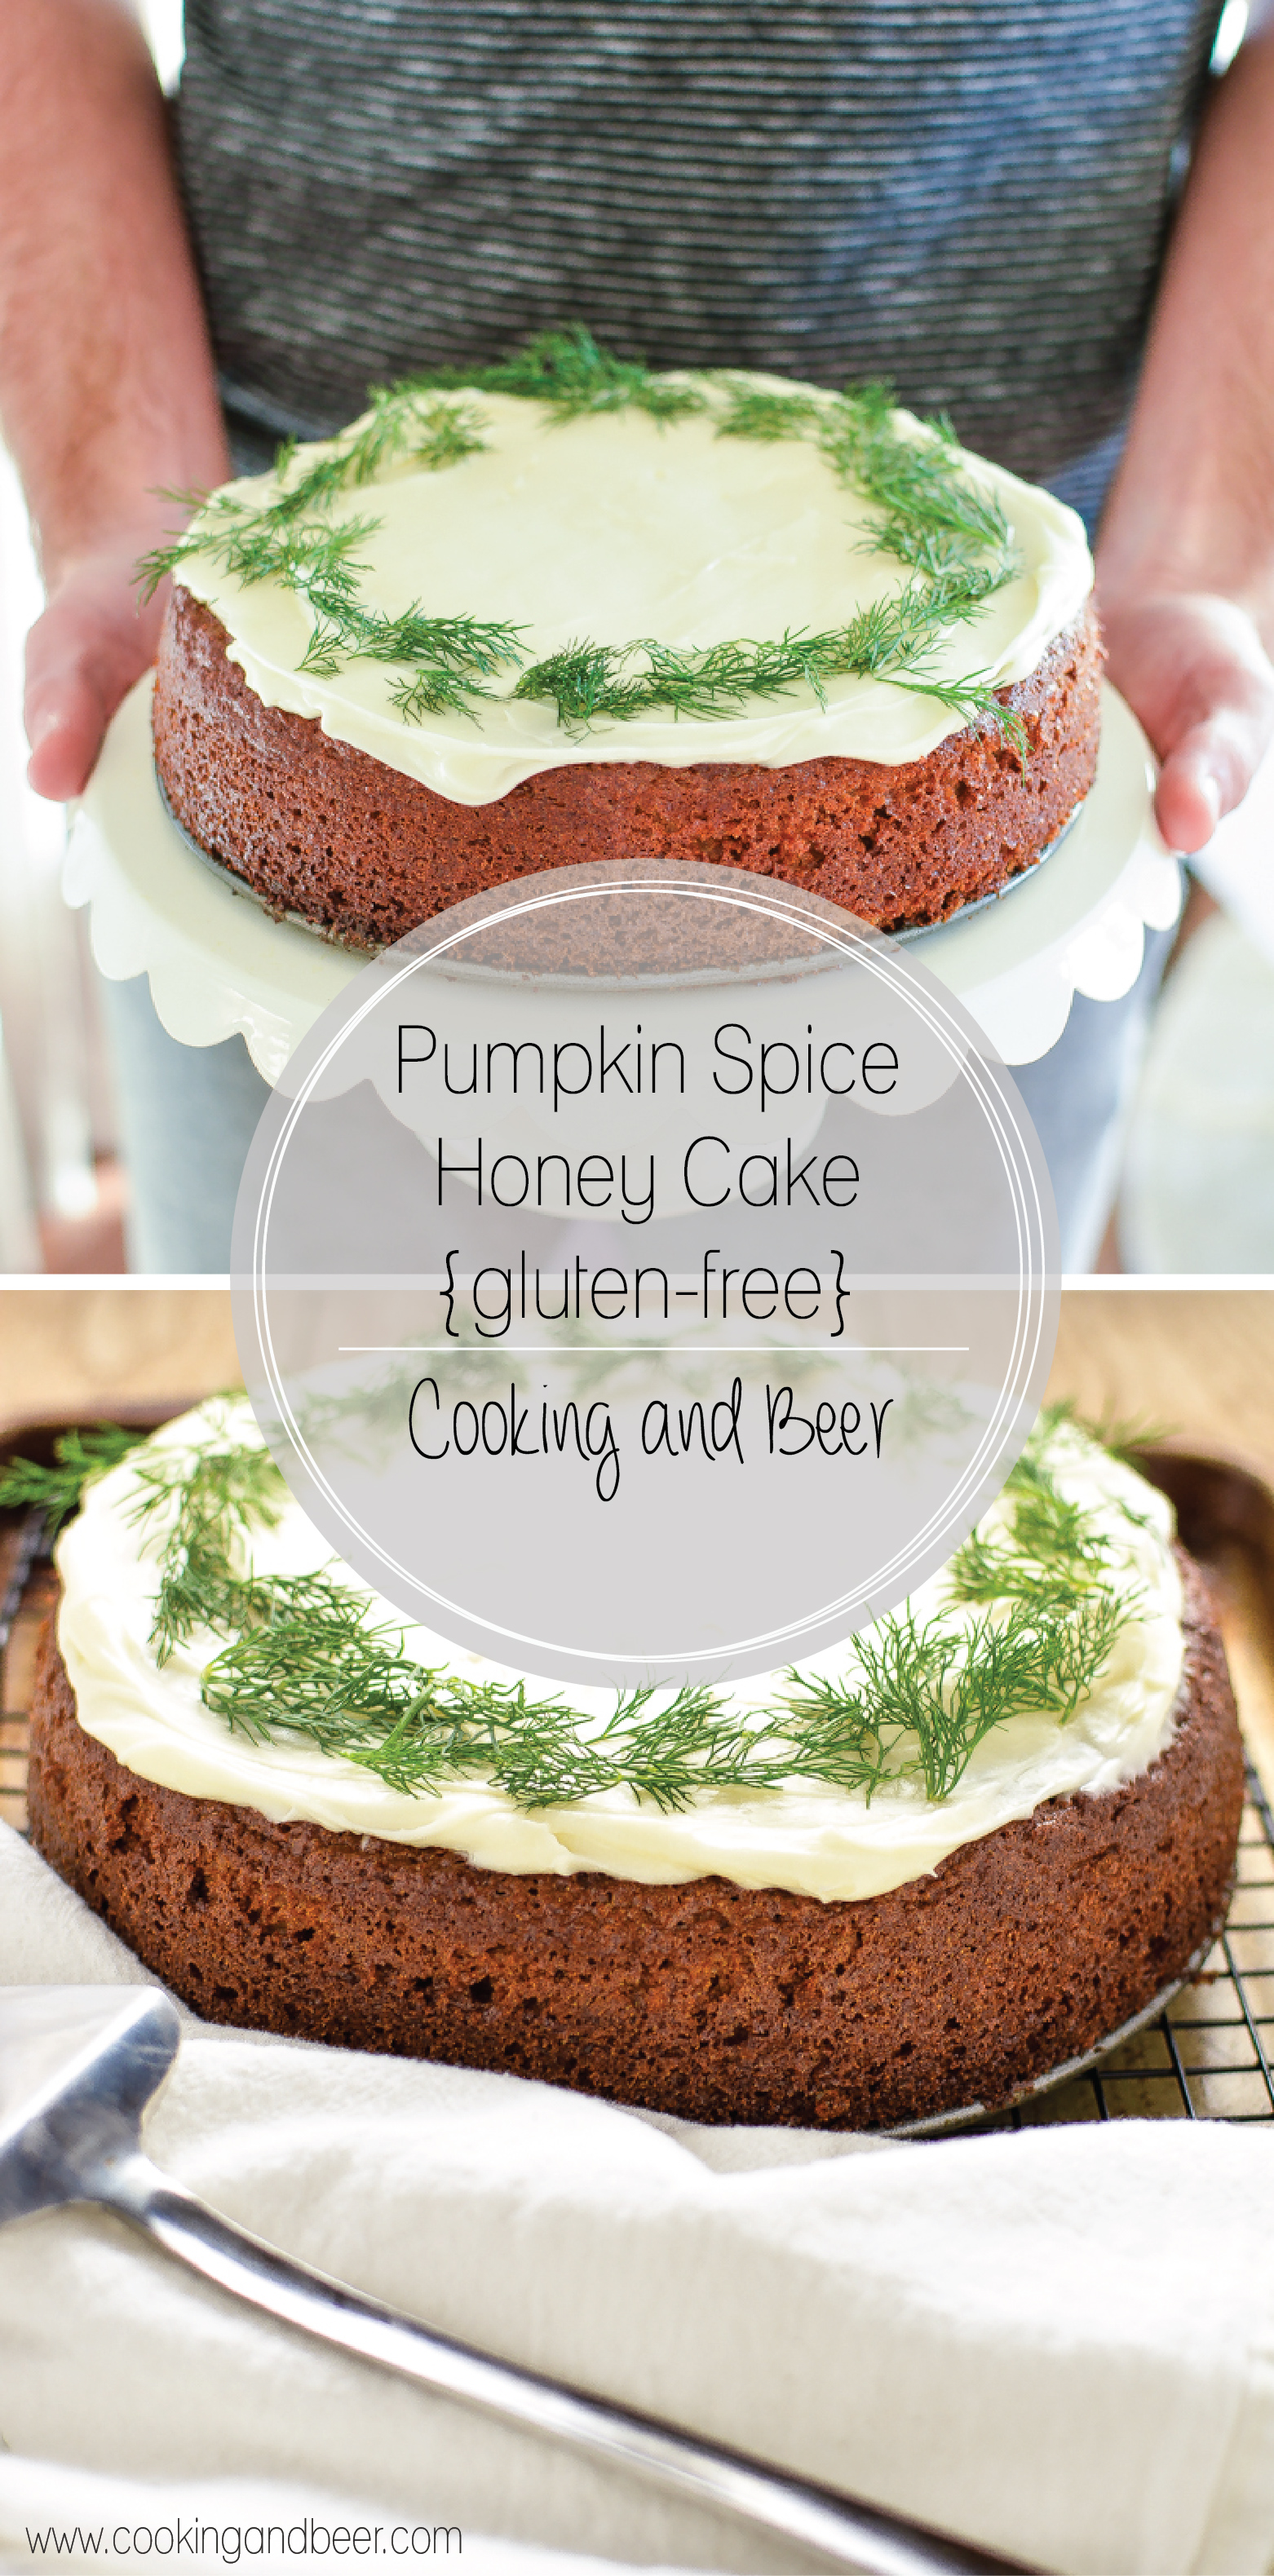 You would never know that this pumpkin spiced honey cake is gluten-free. With it's fall flavors and moist consistency, this cake is a must-have this autumn!